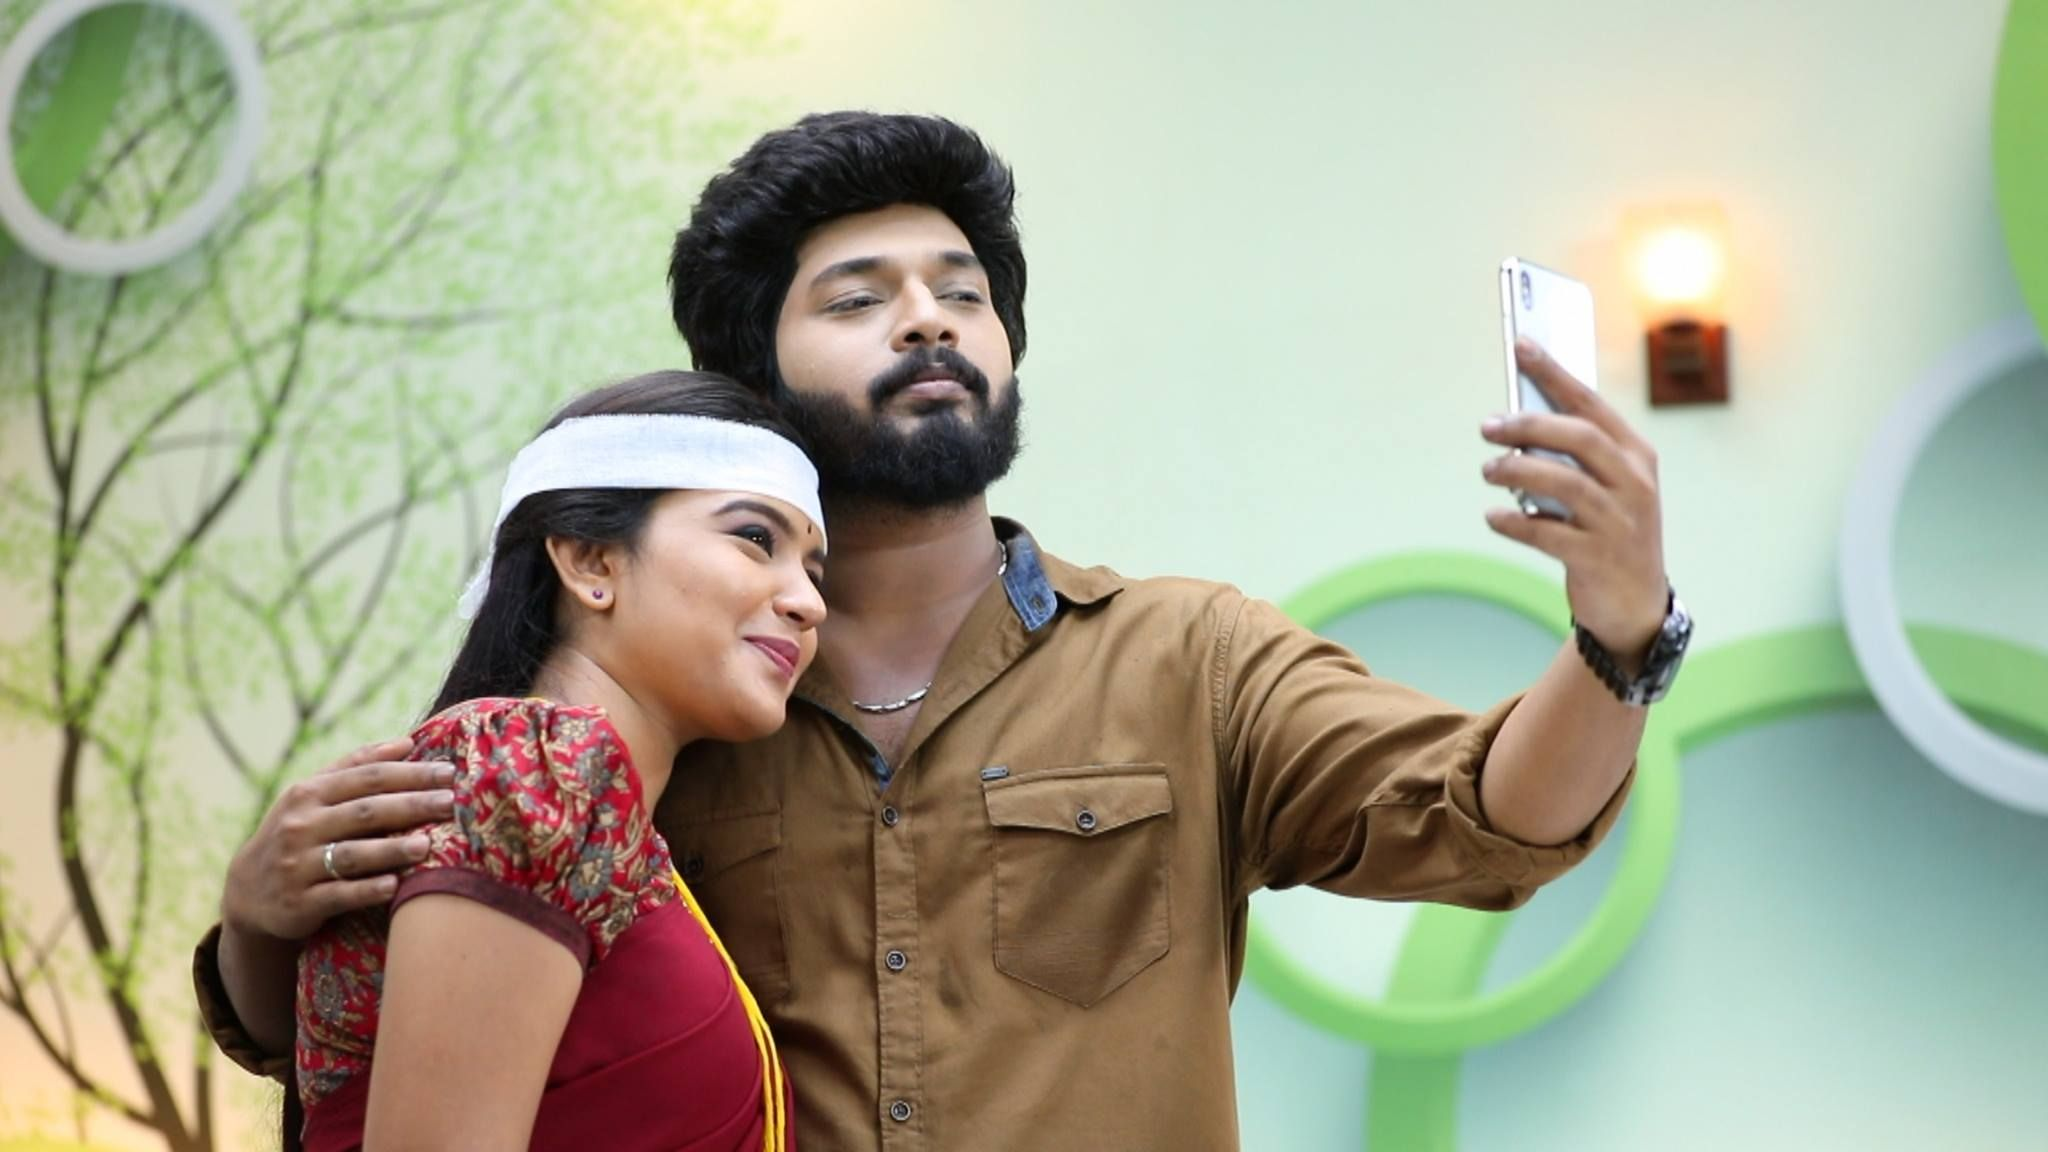 Sembaruthi Serial Parvathi Sembaruthi Serial Cast Sembaruthi Serial Rating And Latest Episode Etc Today Episode Actors Images Film Producer